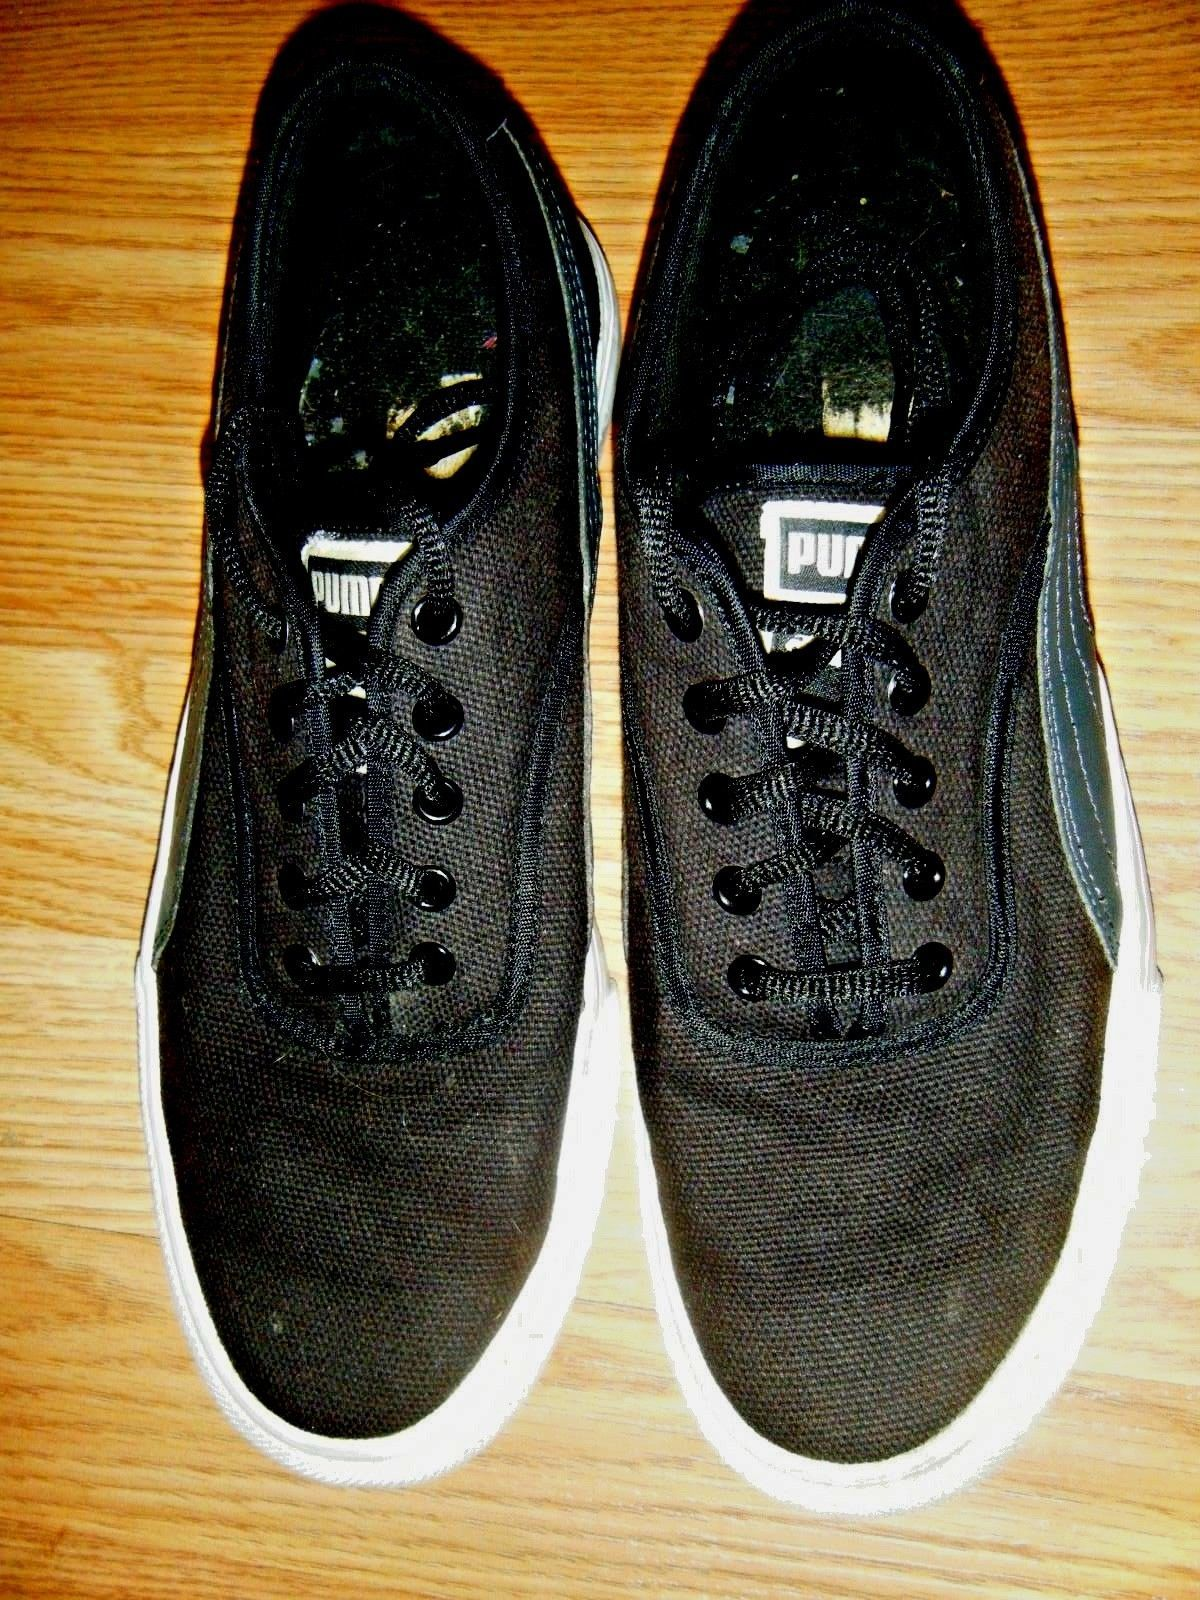 f40b0719d56 Puma Black Canvas Low Sneaker Shoes Size 7 and 50 similar items